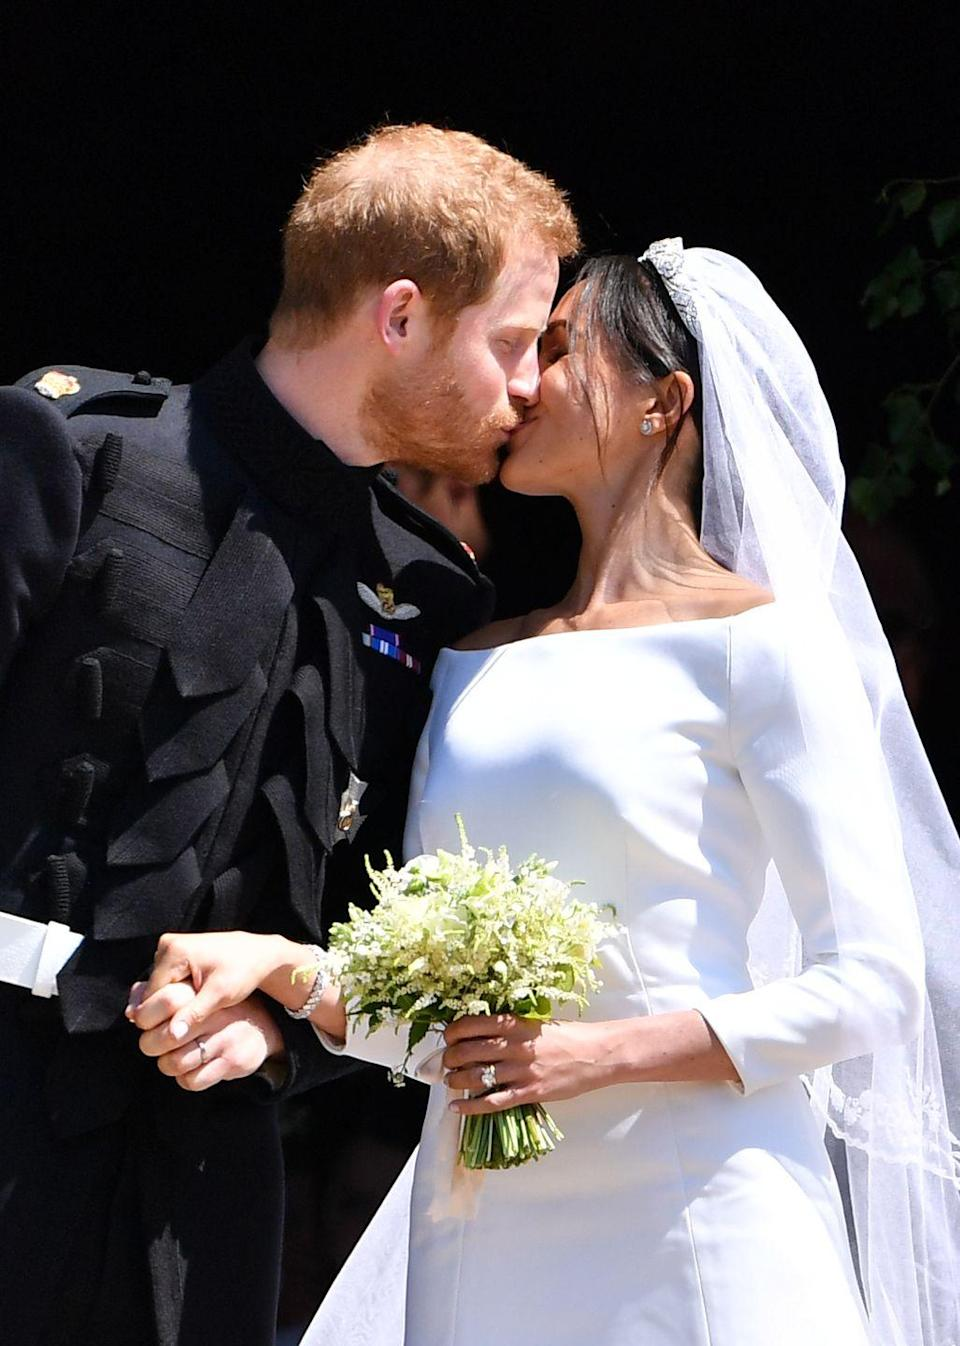 "<p>In a thoughtful tribute to Diana, Meghan's bouquet was filled with spring flowers full of personal meaning to the couple. According to a <a href=""https://www.royal.uk/wedding-dress-bridesmaids%E2%80%99-dresses-and-page-boys-uniforms"" rel=""nofollow noopener"" target=""_blank"" data-ylk=""slk:palace statement"" class=""link rapid-noclick-resp"">palace statement</a>, Prince Harry handpicked several flowers from their private garden at Kensington Palace. The most notable were Forget-Me-Nots, which were Diana's favorite flower. What a tender gesture! </p>"